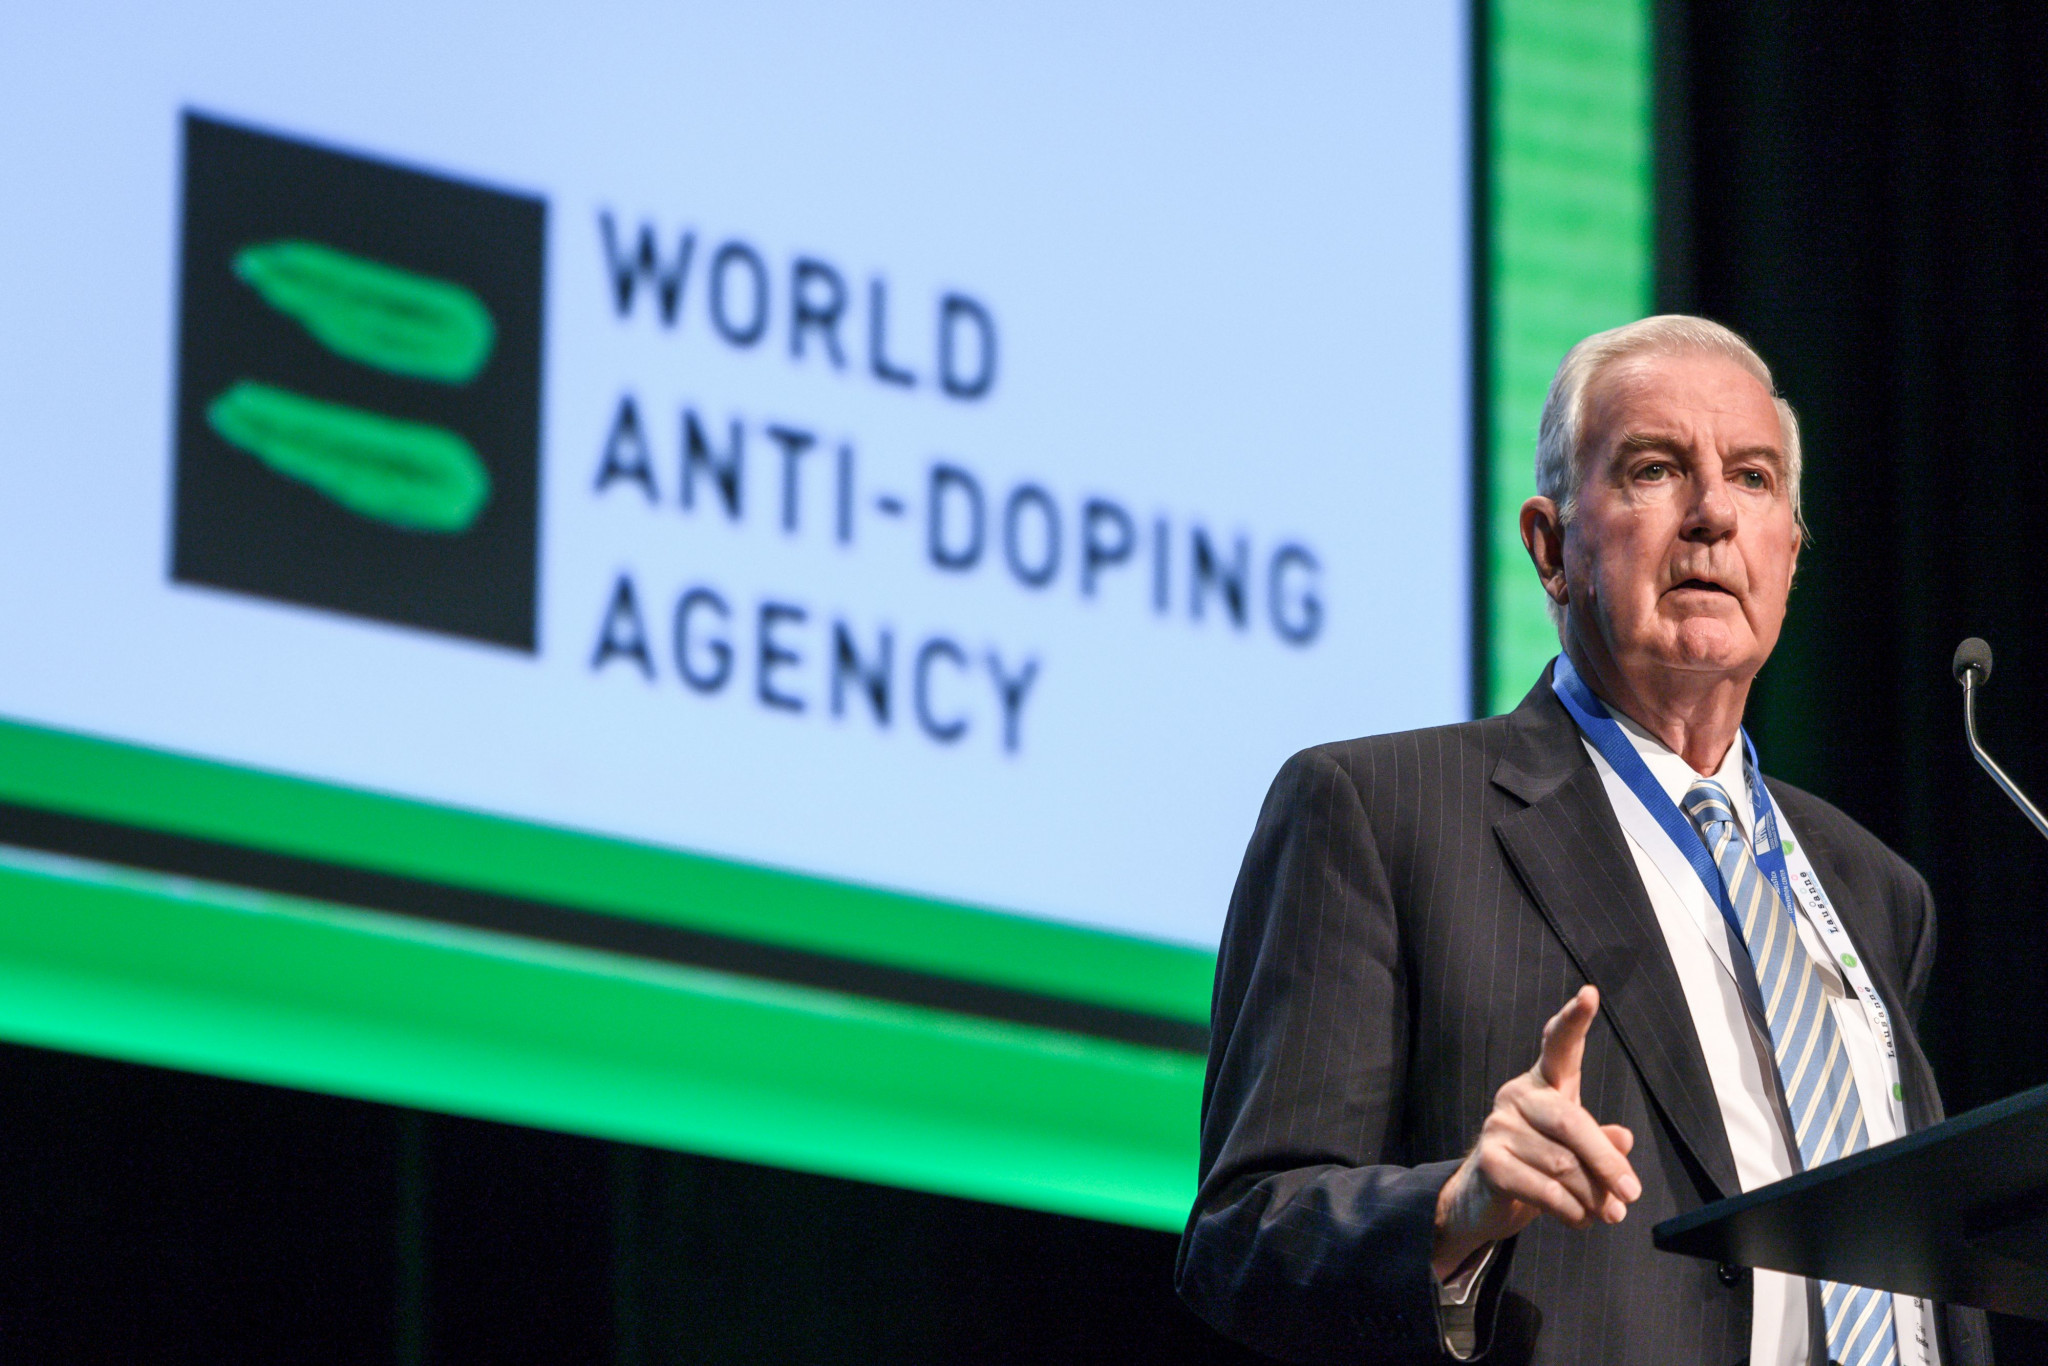 Sir Craig Reedie hopes the new rules will avoid a repeat of the Russian doping scandal ©Getty Images